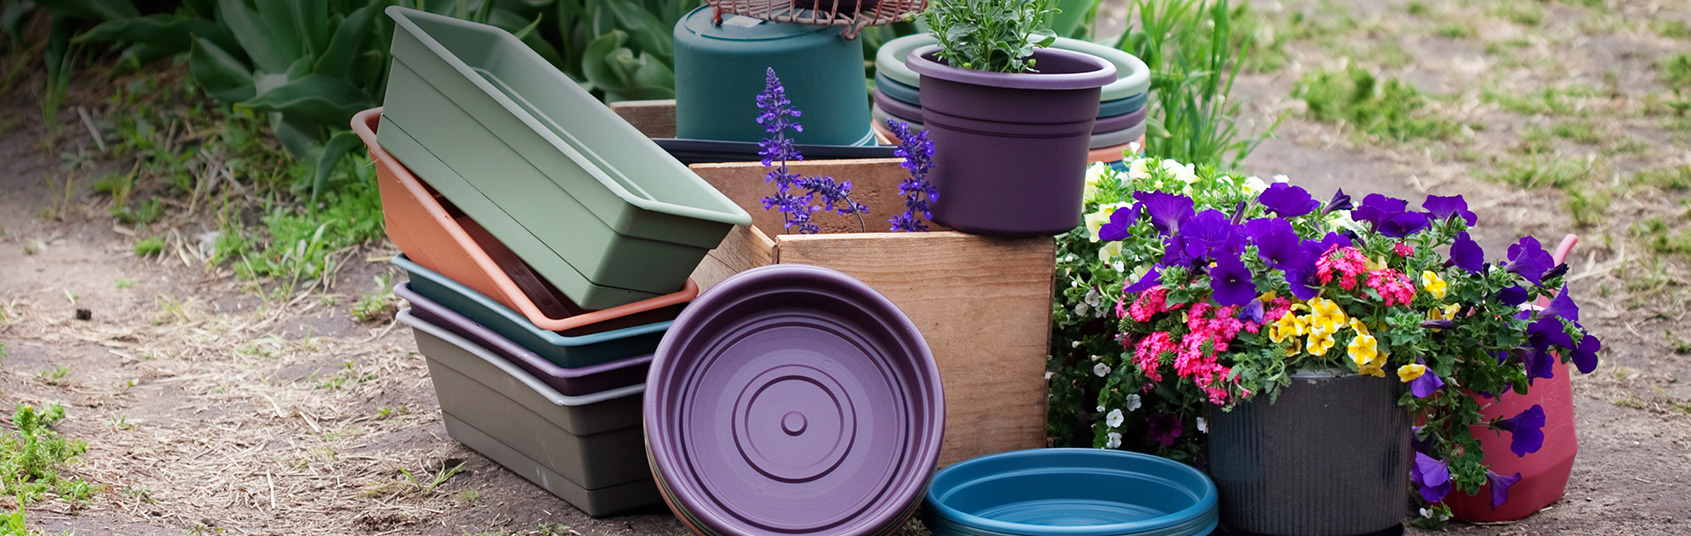 Gardening Pots Planters Amp Accessories Amazon Com